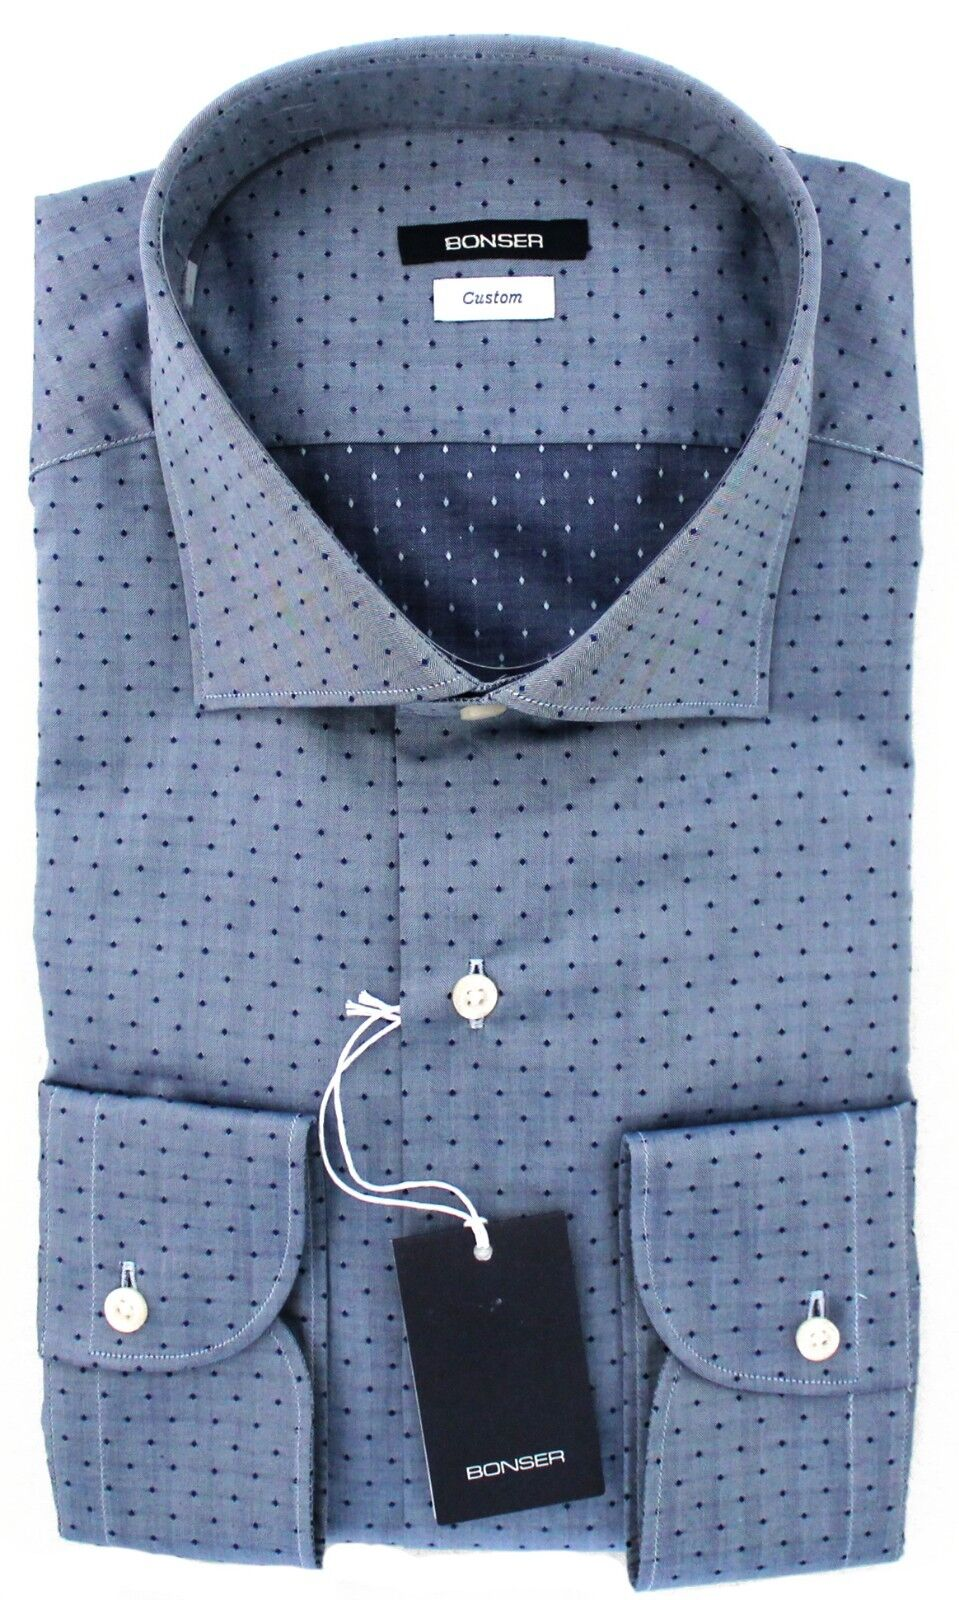 CAMICIA UOMO BONSER CUSTOM FIT CLASSICA BLU A POIS PUNTINI SCURI COLLO FRANCESE